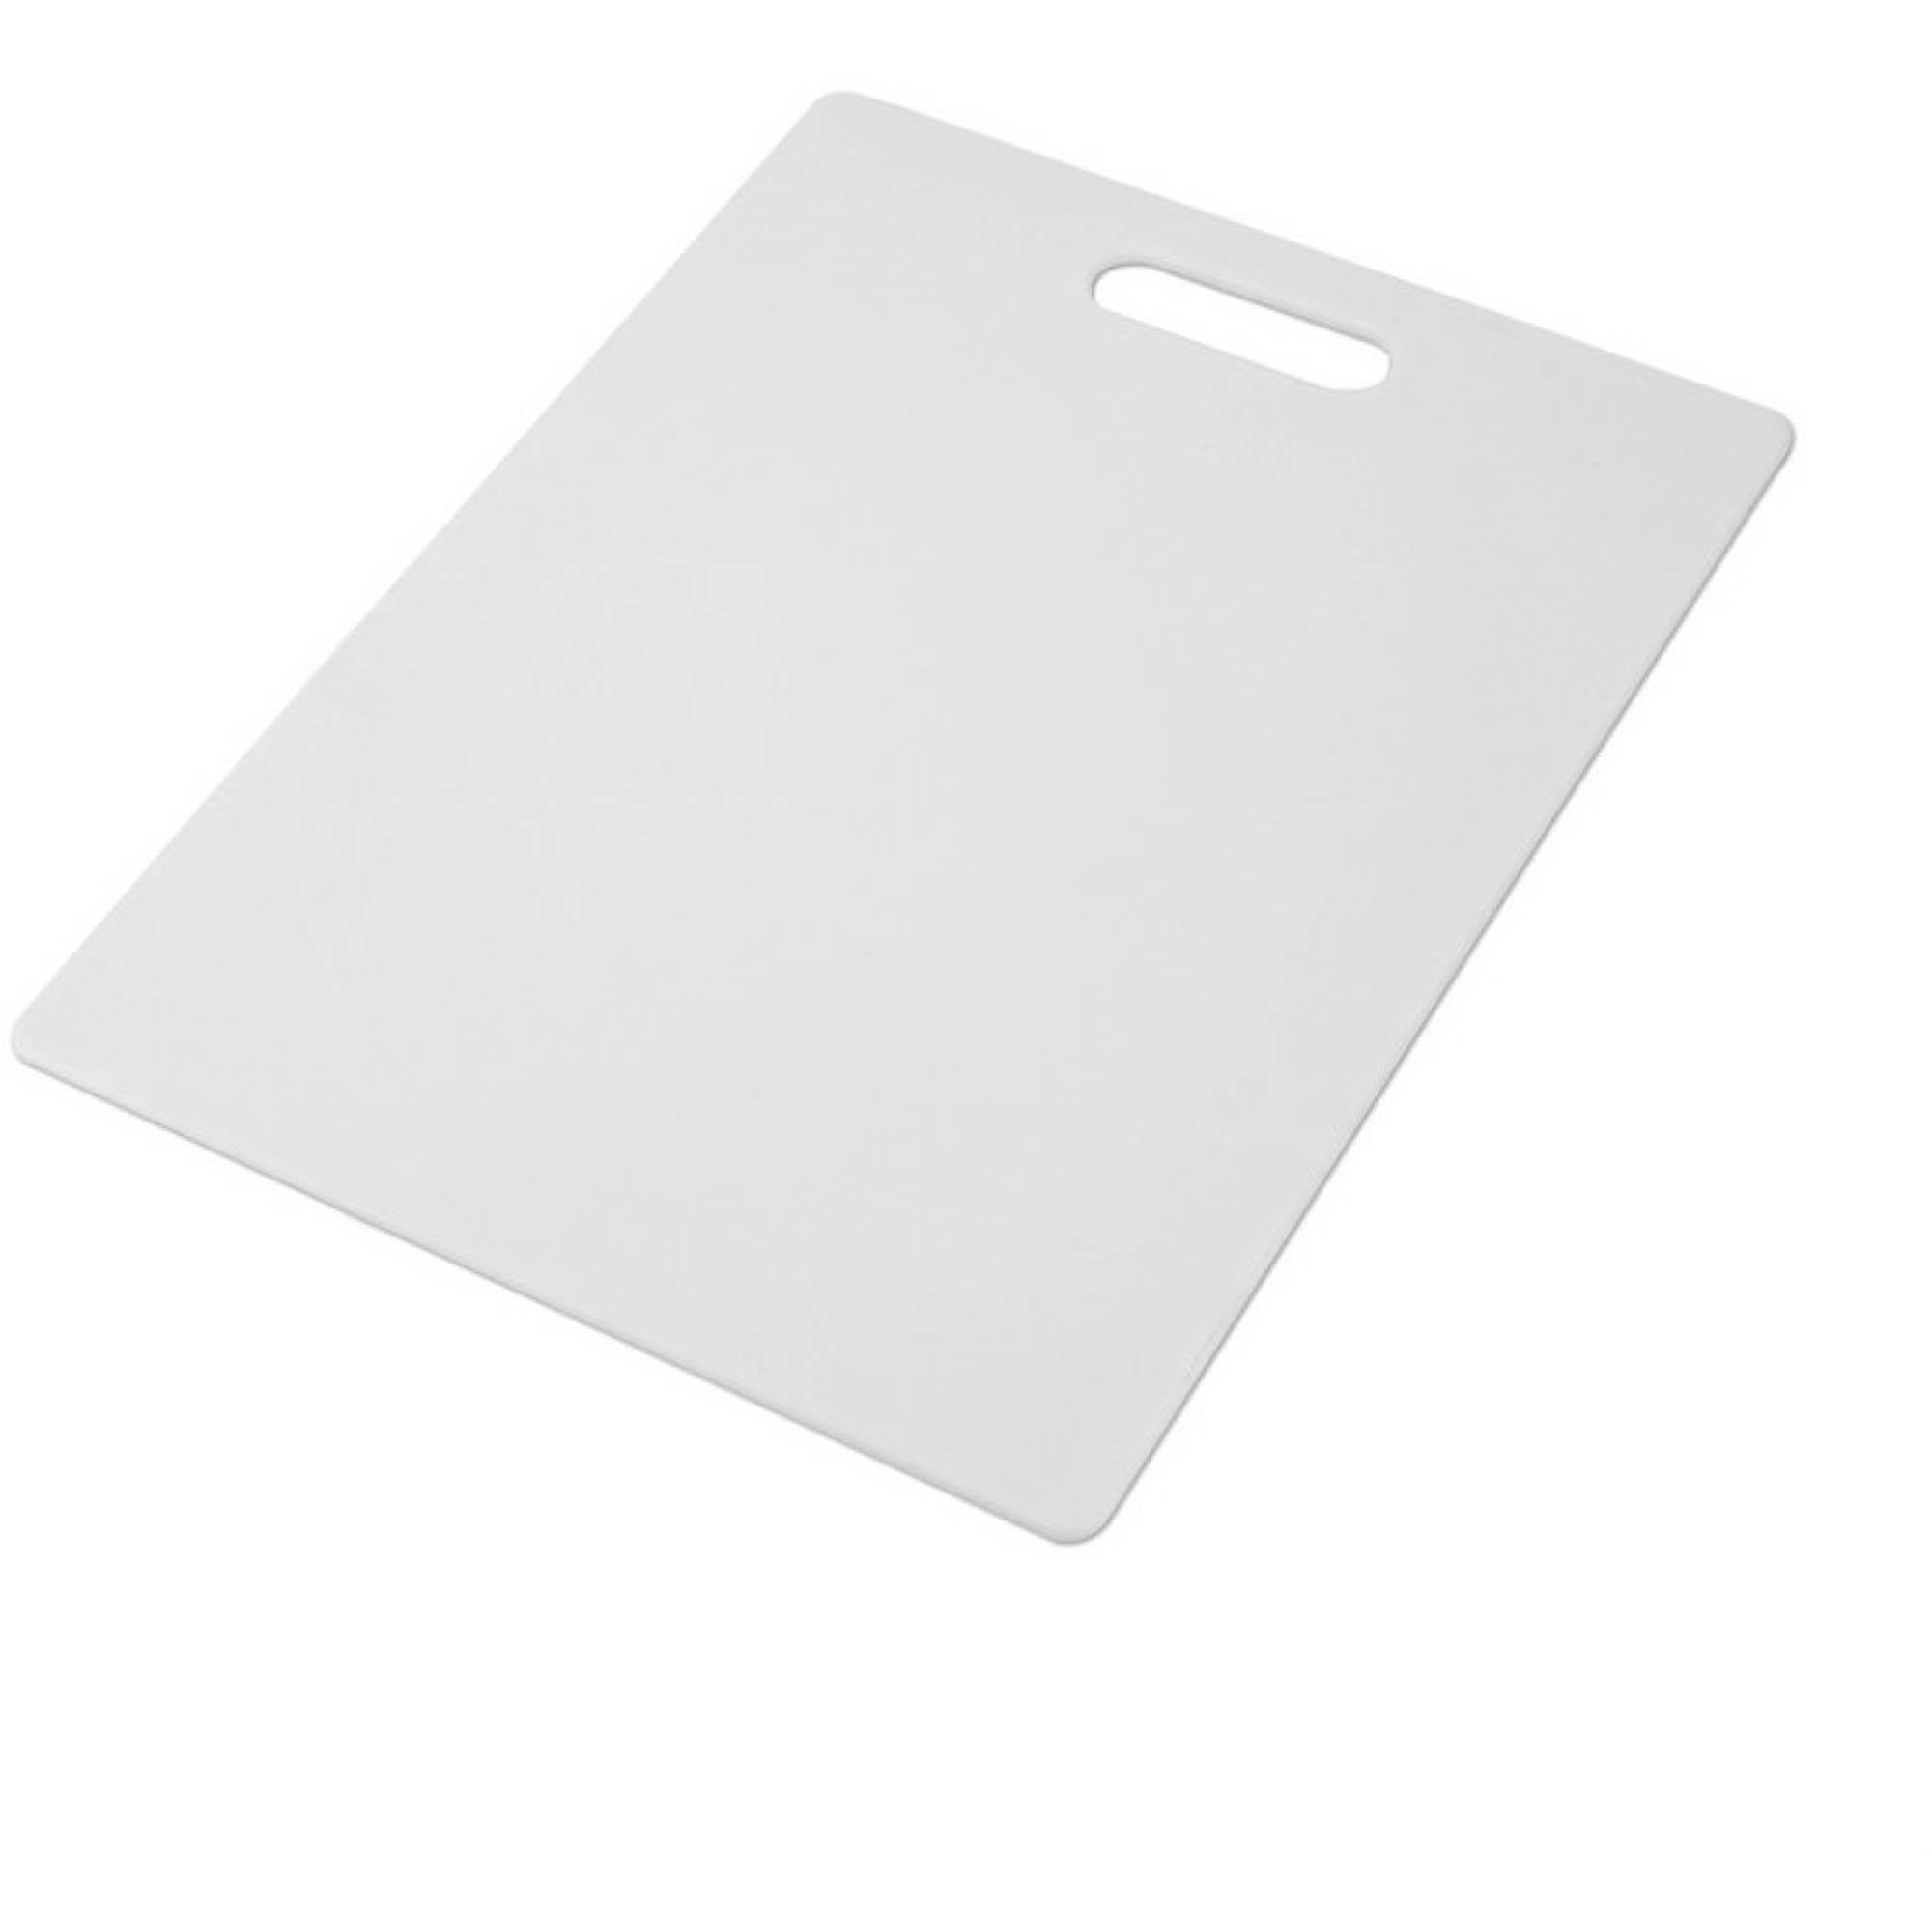 Image result for walmart cutting board